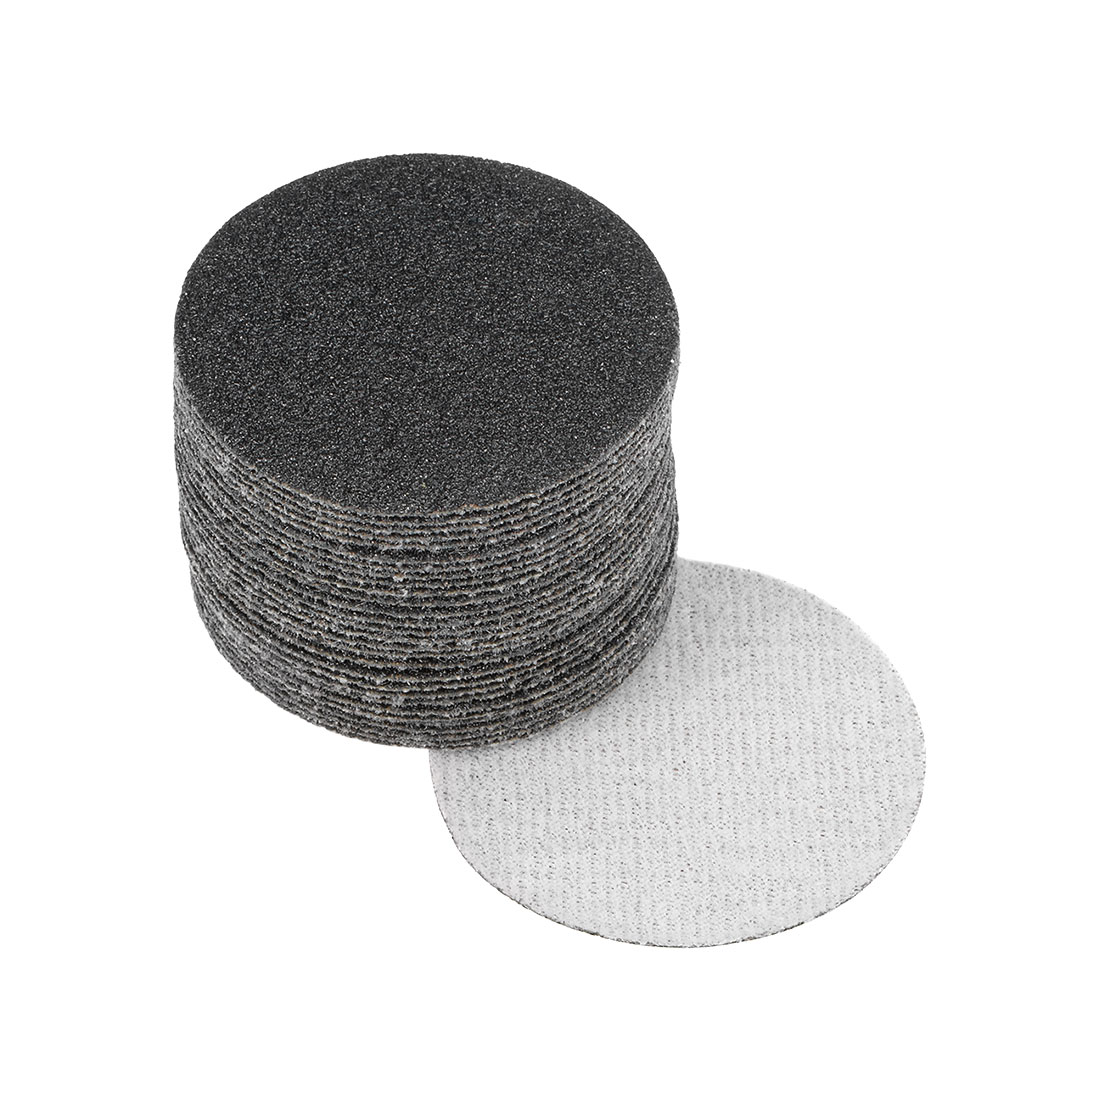 2 inch Wet Dry Discs 80 Grit Hook and Loop Sanding Disc Silicon Carbide 30pcs